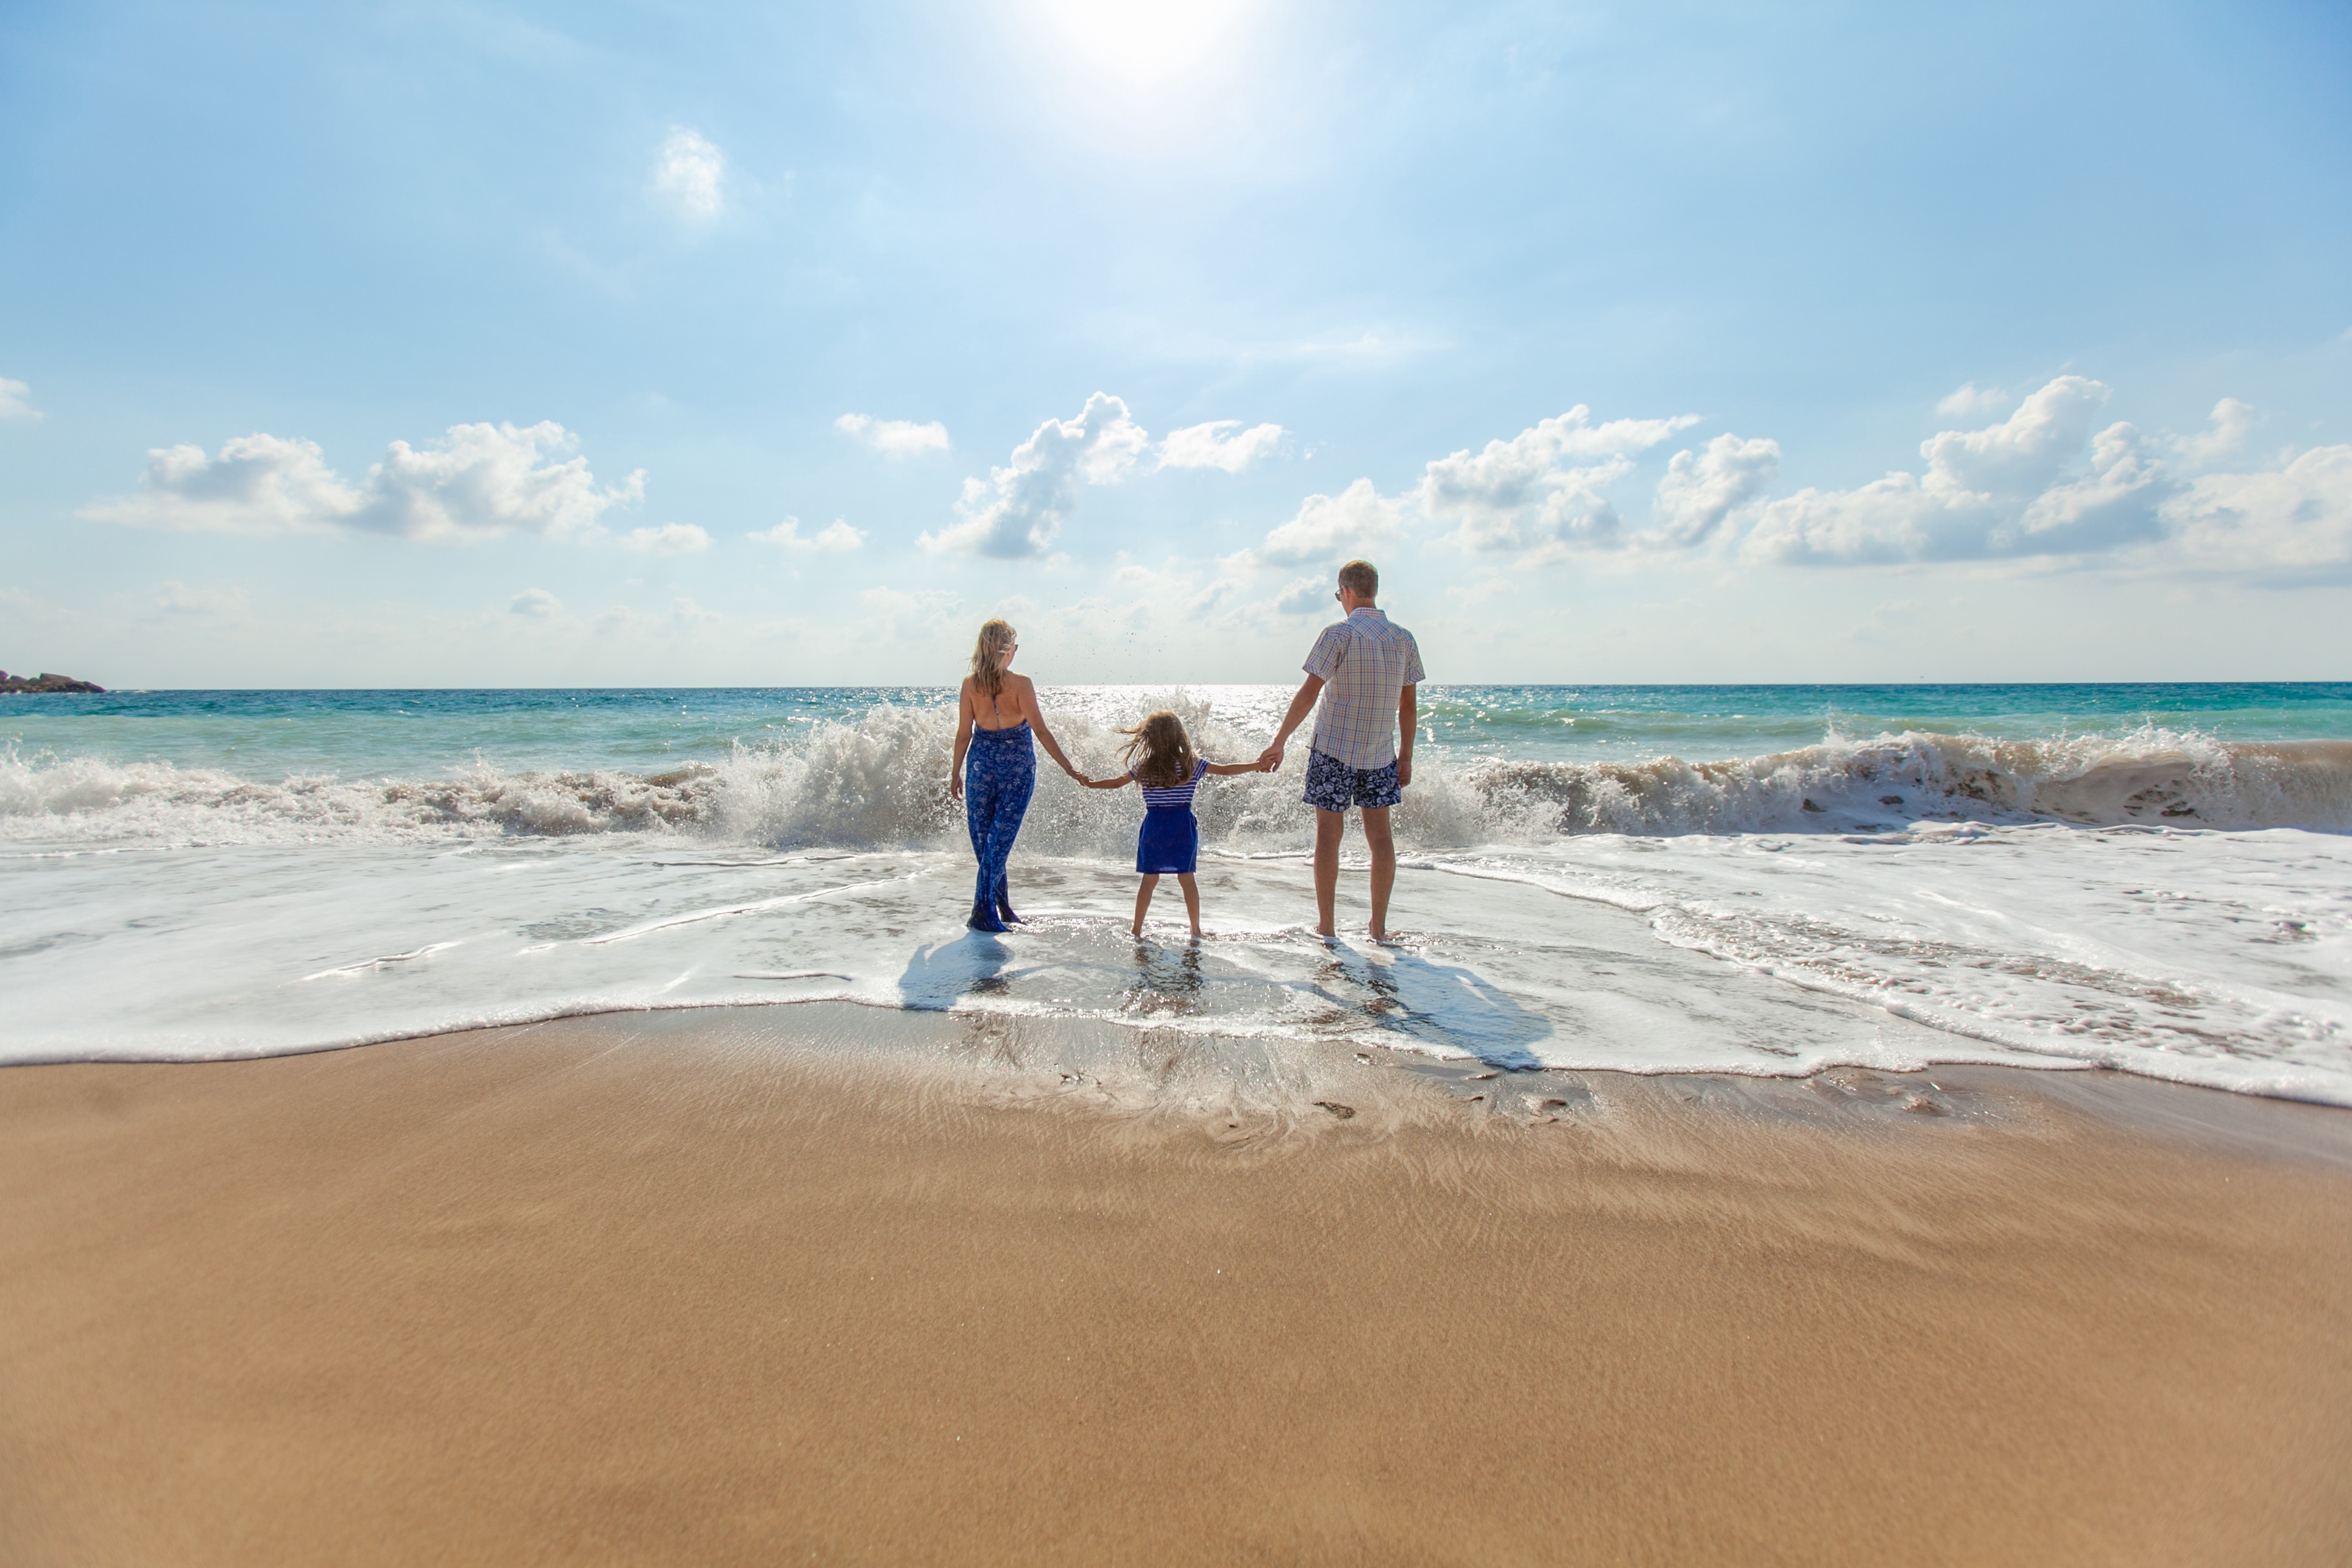 A family standing on a beach, enjoying themselves on a sunny afternoon.